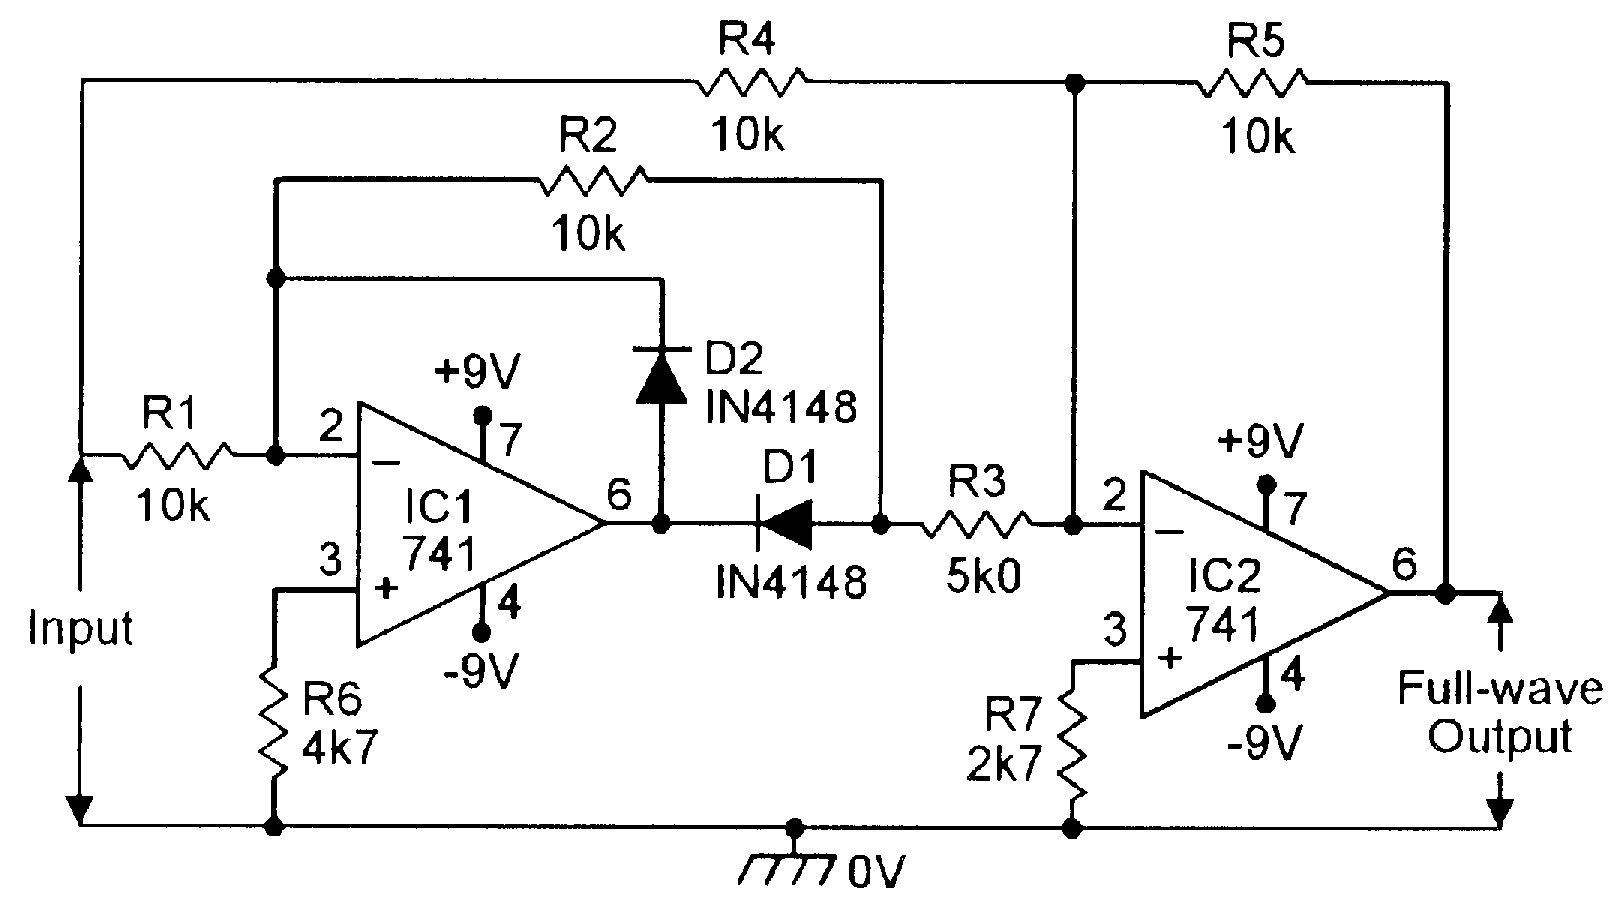 Op Amp Opamp Relaxation Oscillator Single Supply Electrical Circuit Diagram Of 741 Wiring Library Figure 4 Precision Full Wave Rectifier